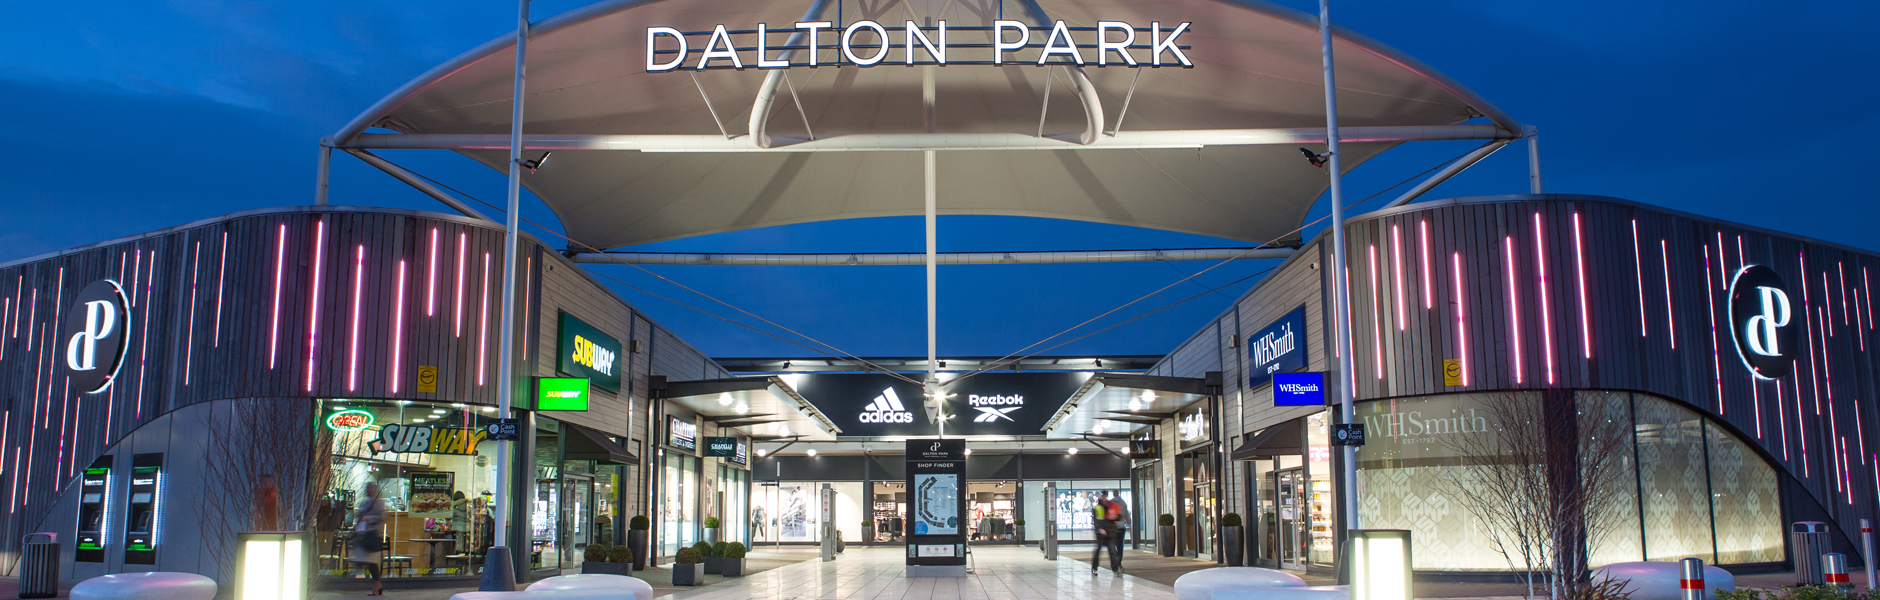 Four Fresh brands boost thriving Dalton Park